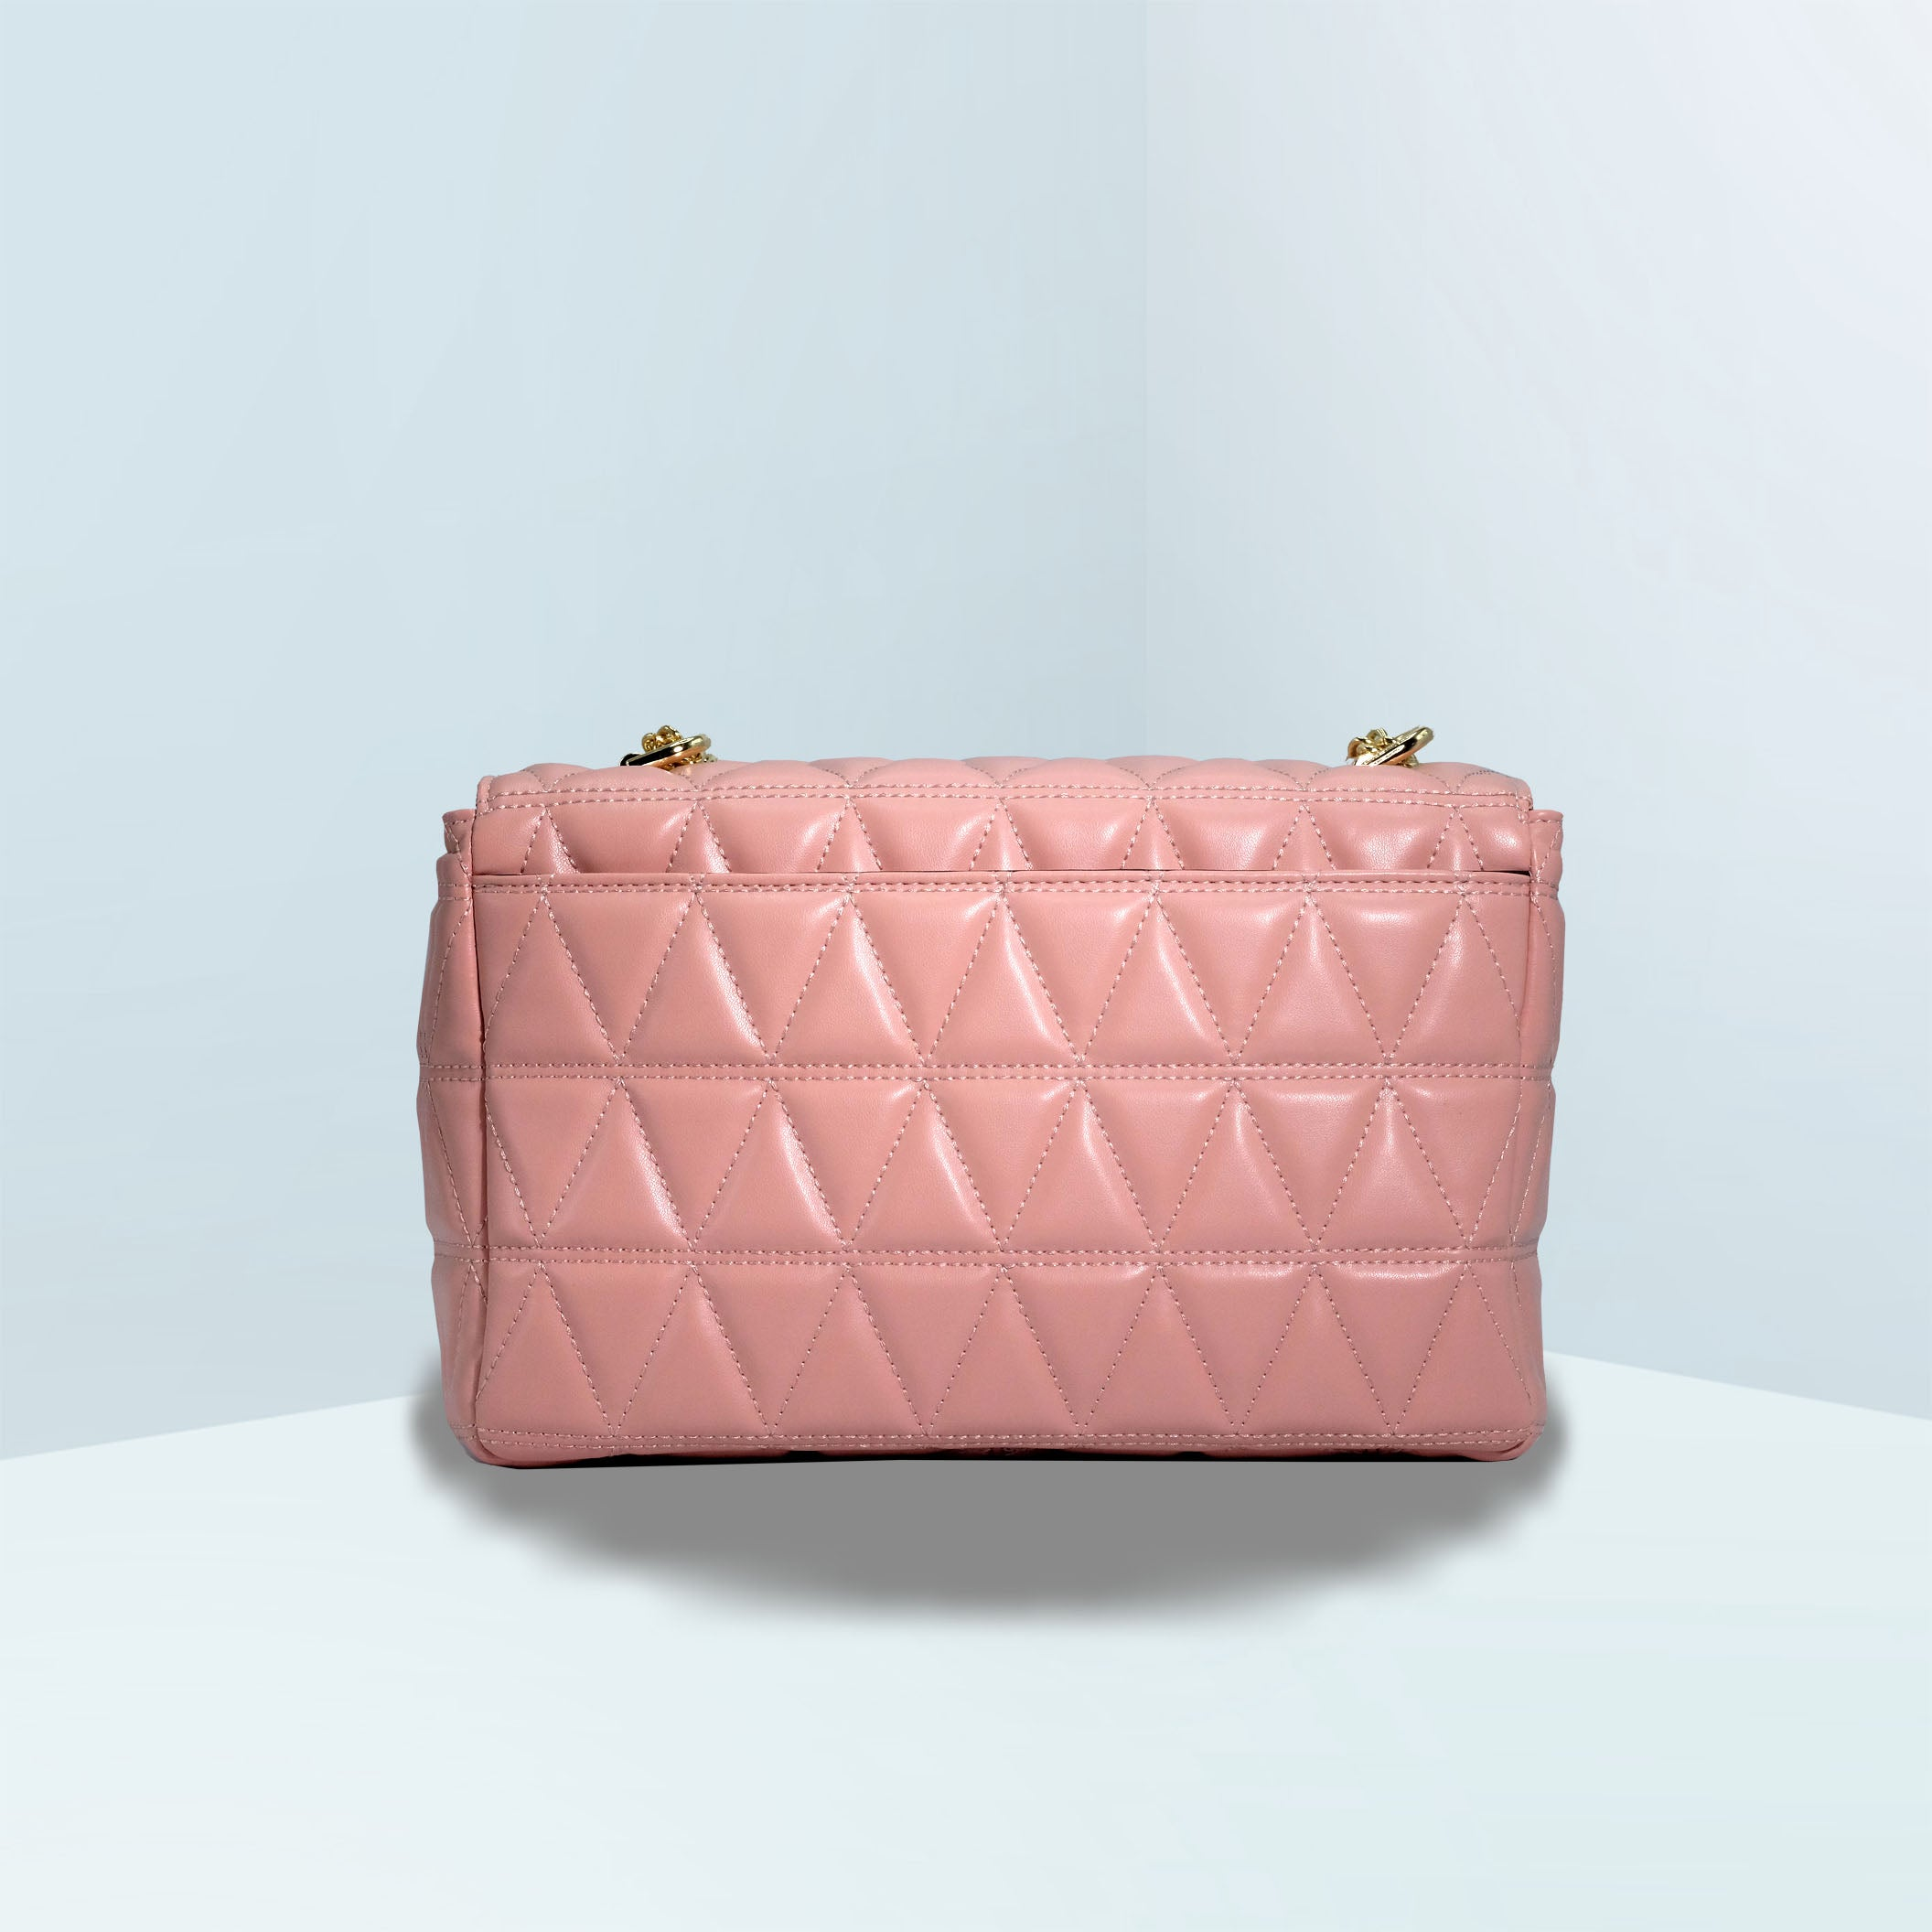 Sloan Large Quilted-Leather Convertible Crossbody Bag